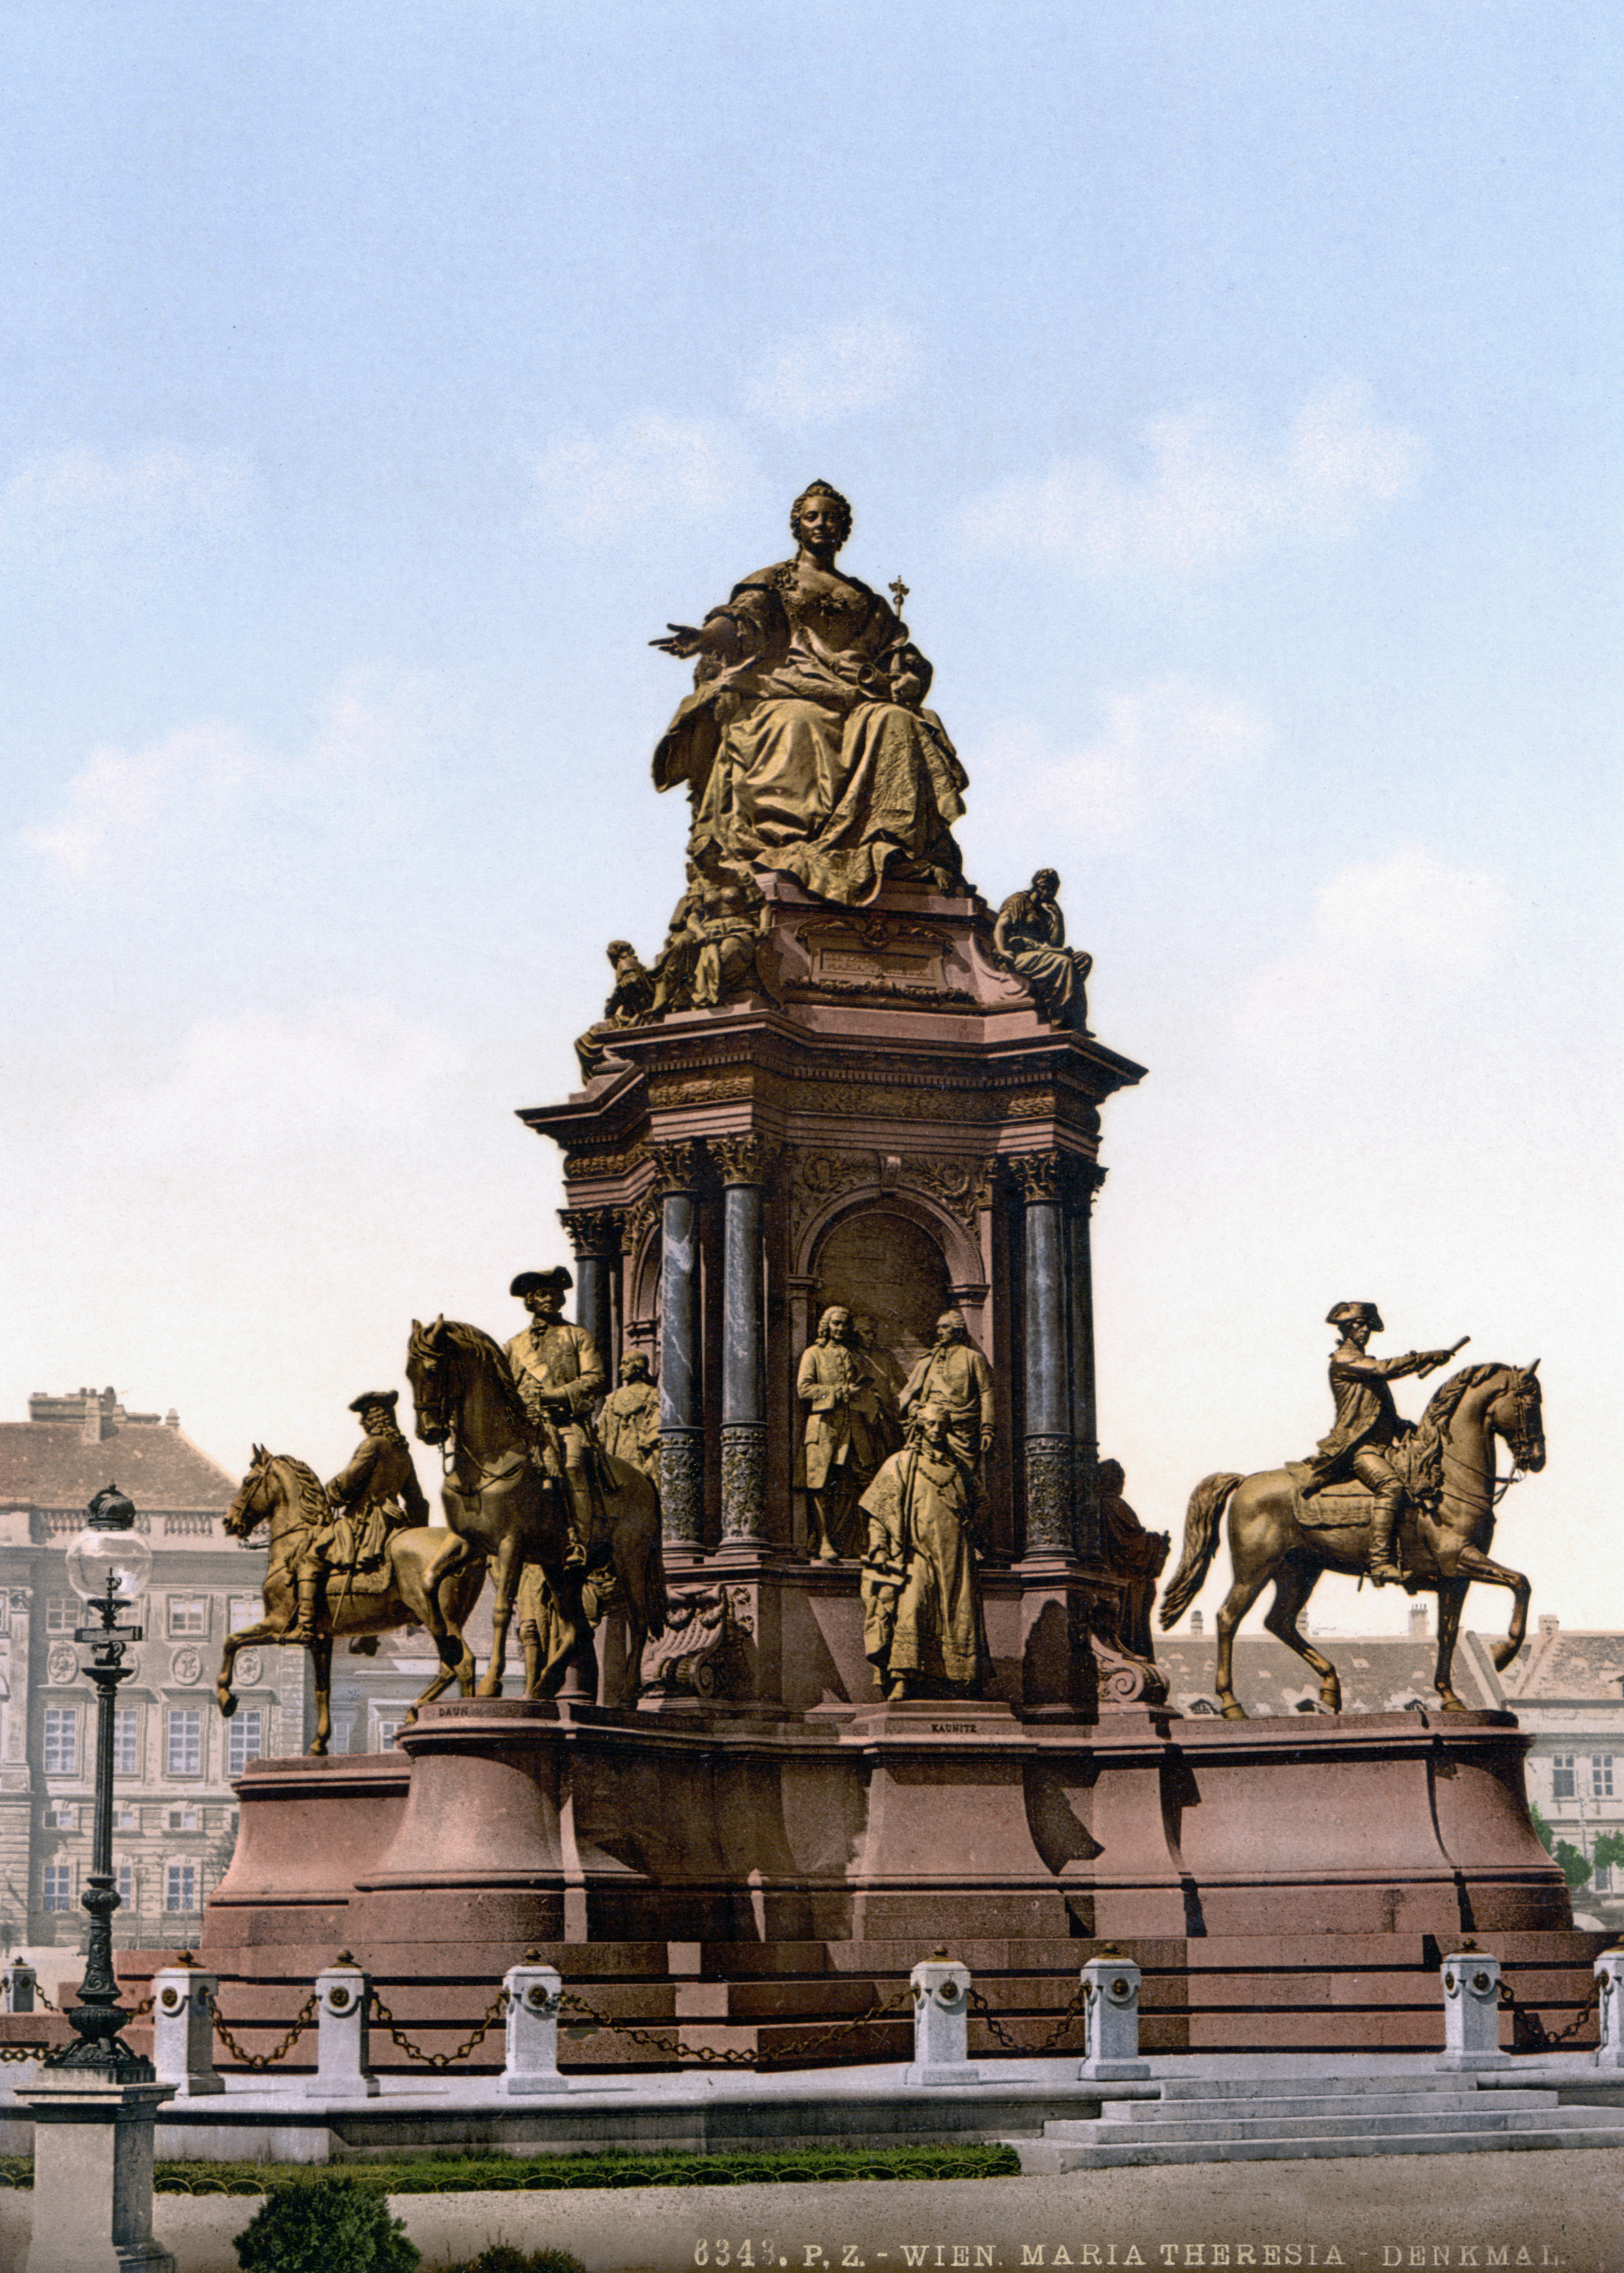 Maria Theresa monument in Vienna, surrounded by her advisers.